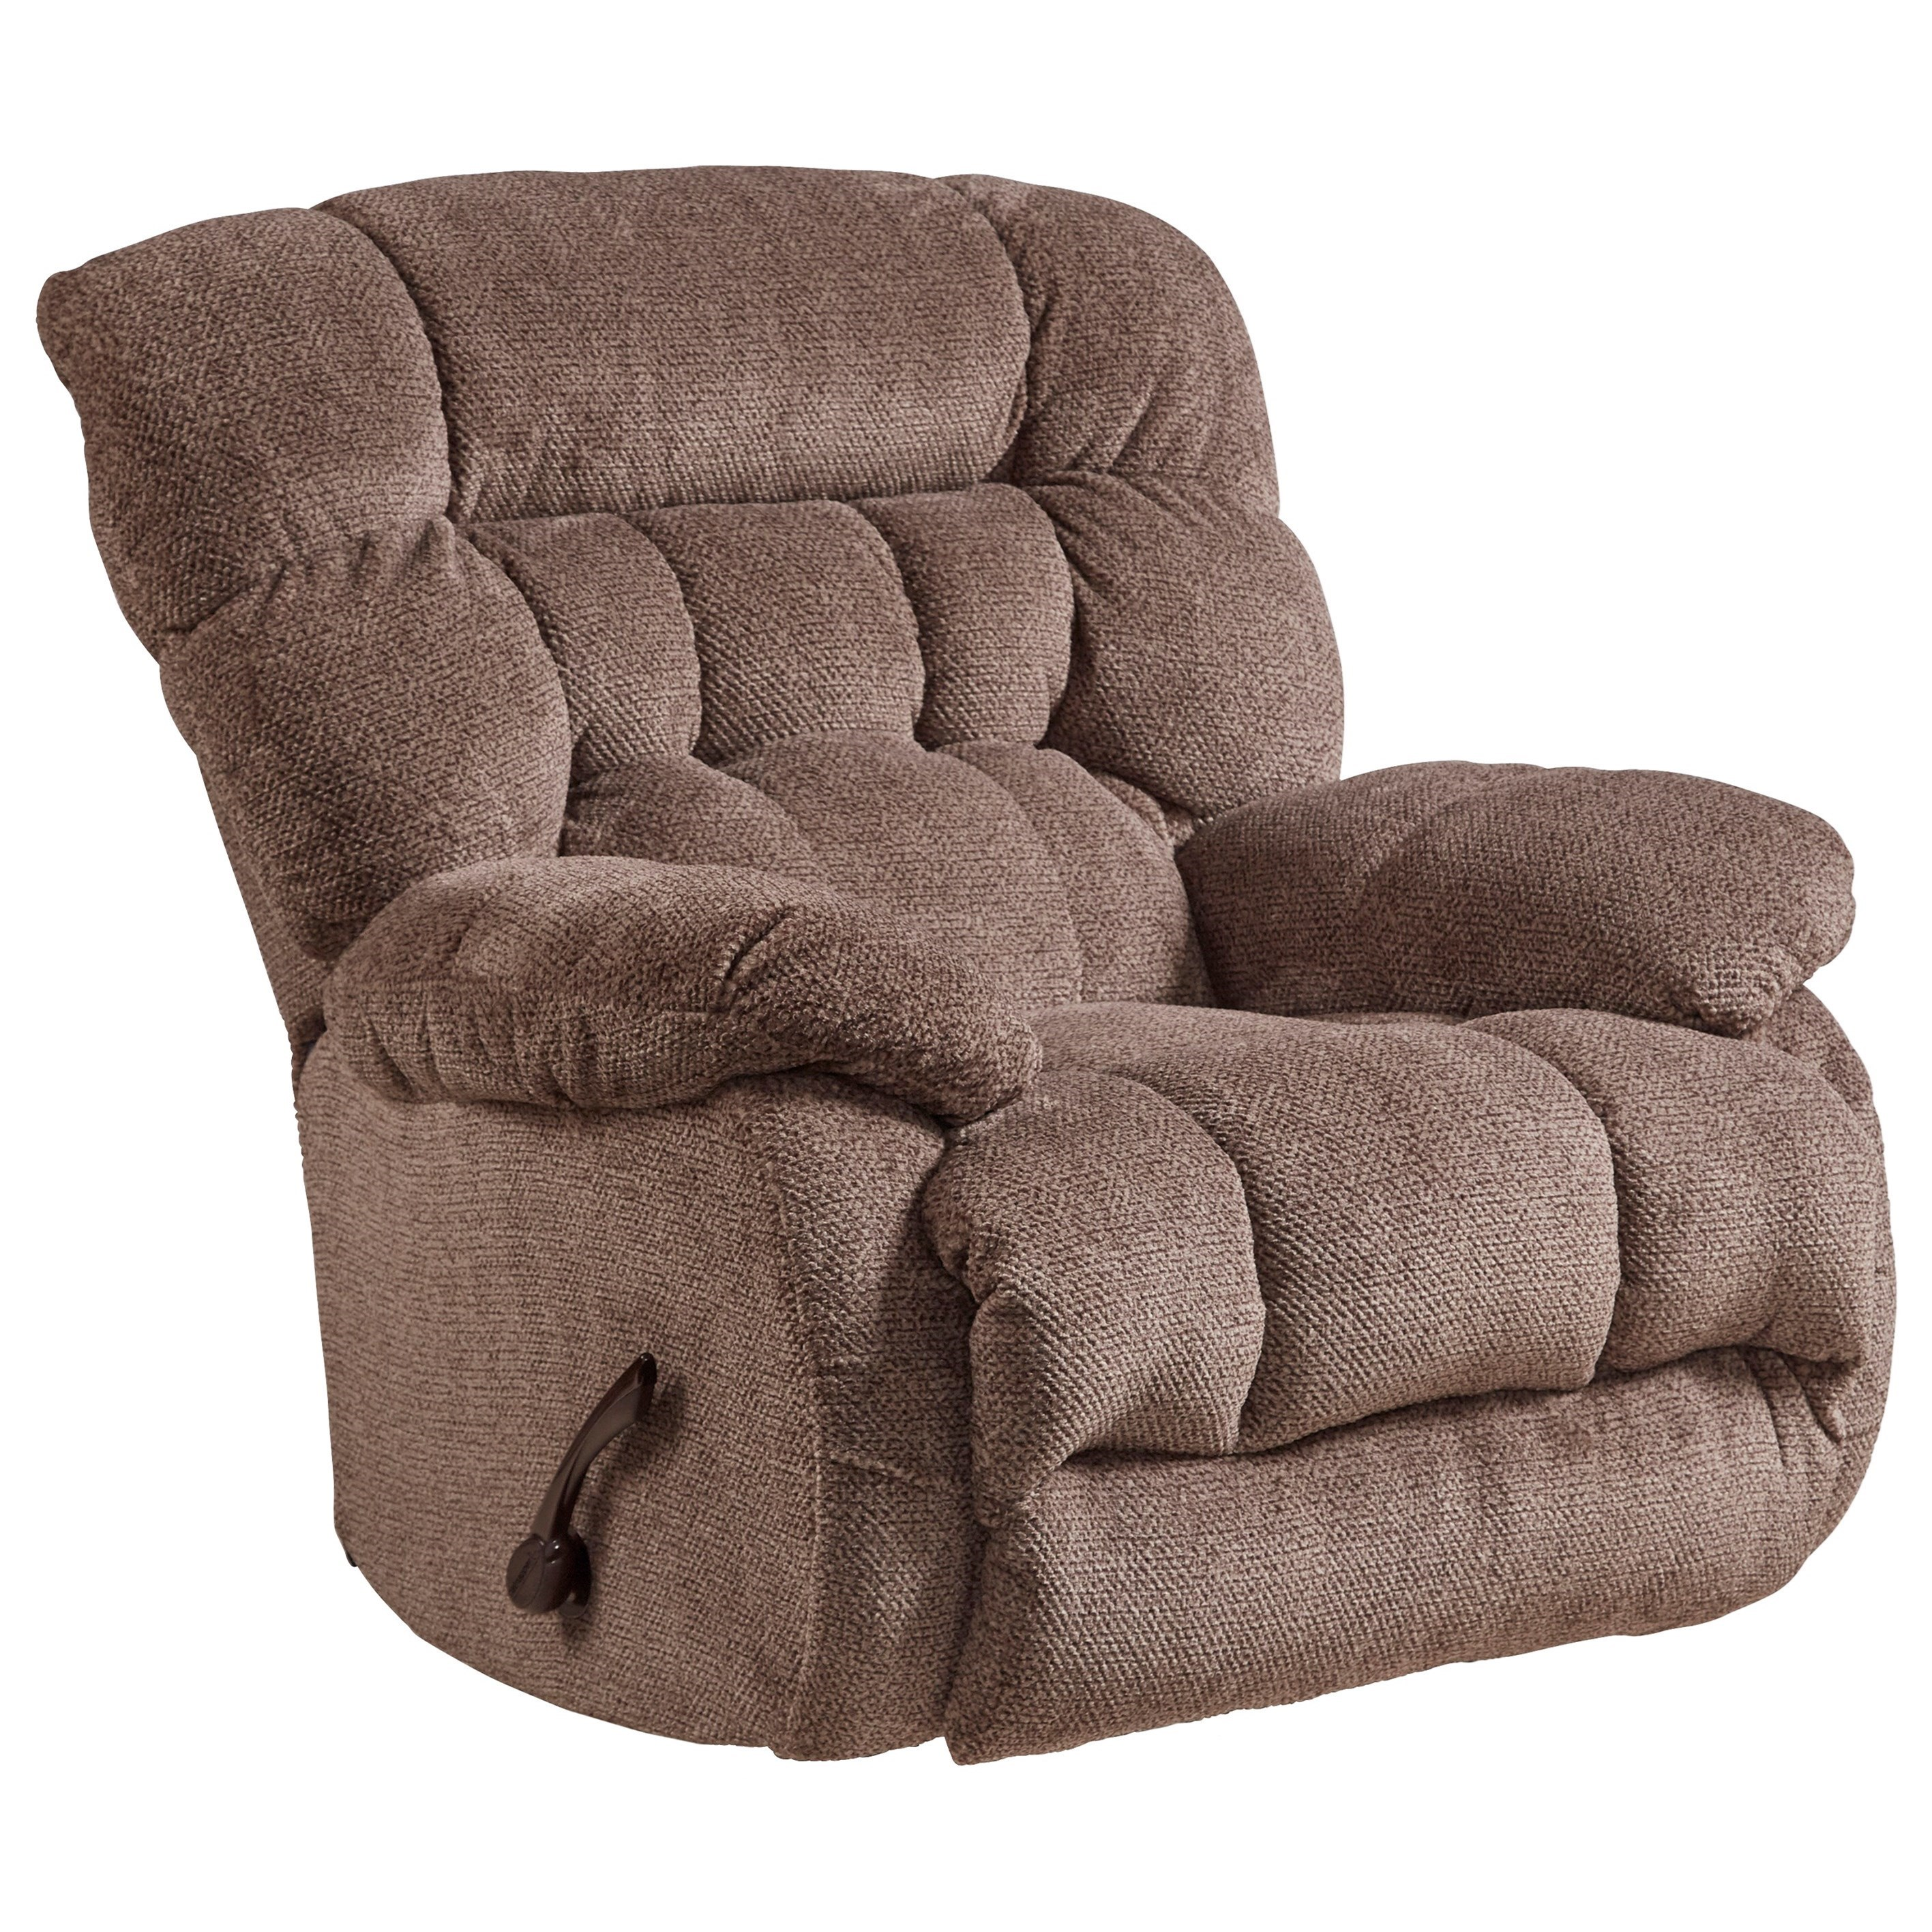 Daly Swivel Glider Recliner by Catnapper at Lapeer Furniture & Mattress Center